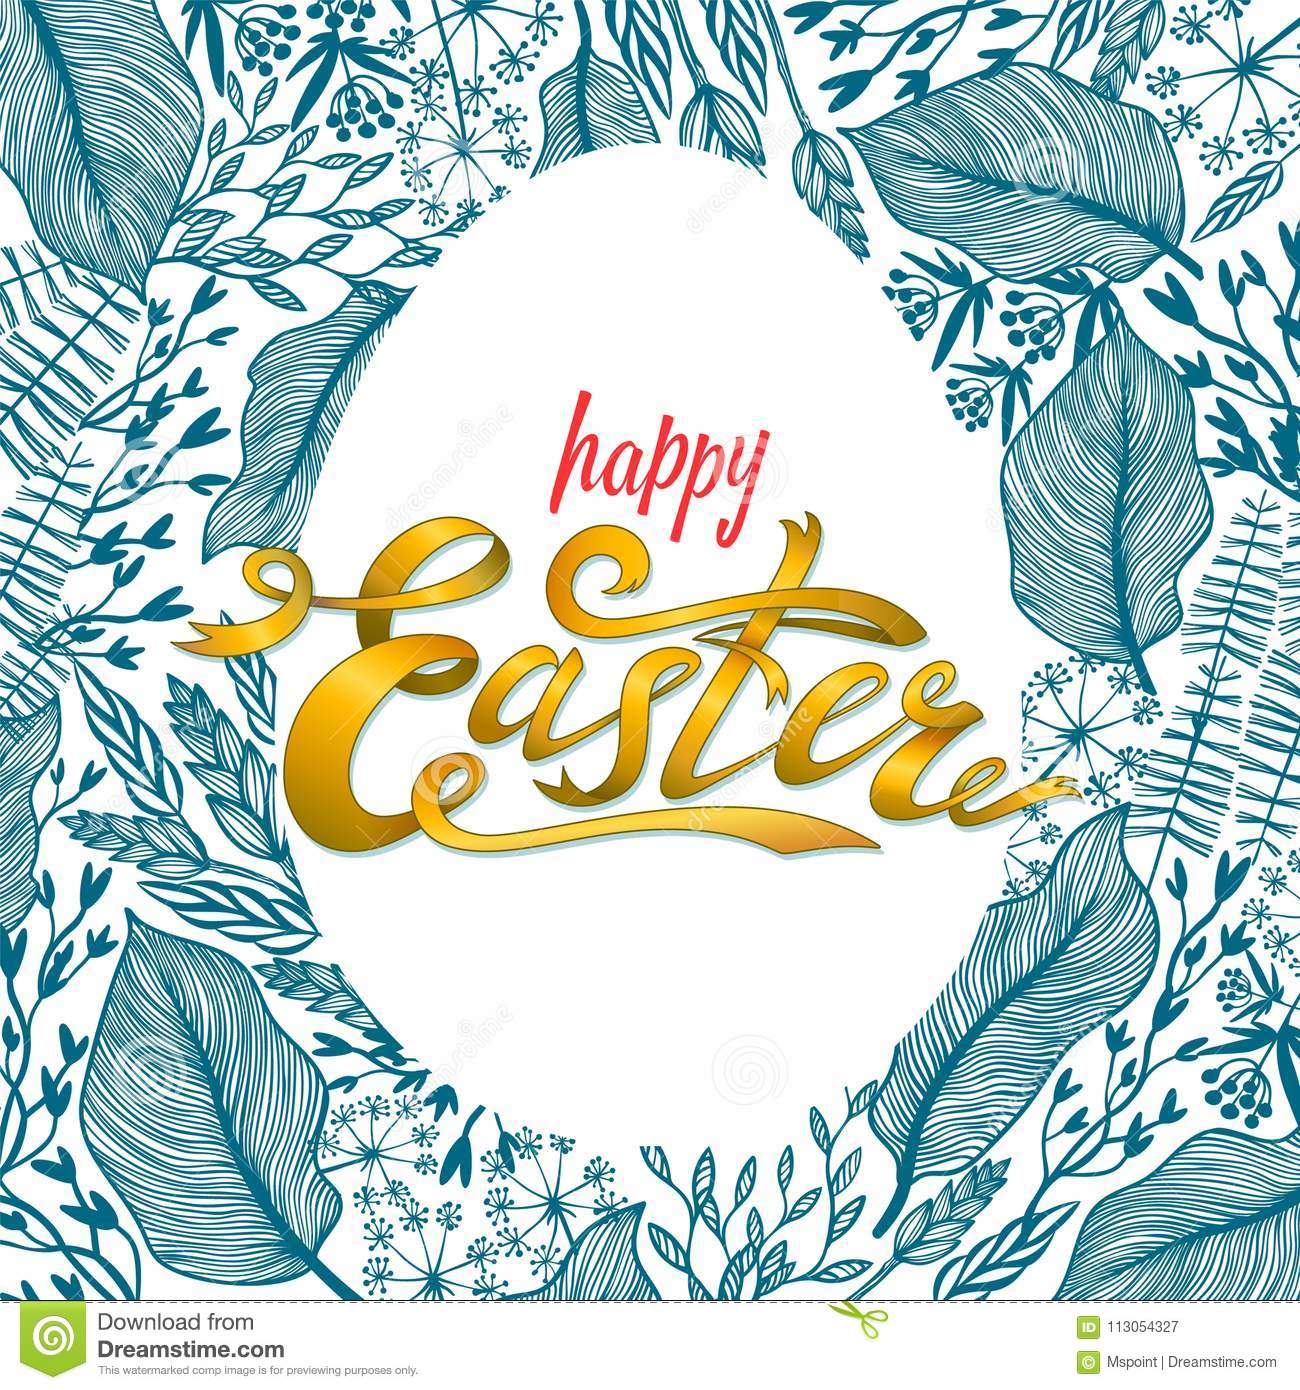 Easter greeting card with floral frame in egg shape. Herbal background. Perfect for season greeting cards and banners.